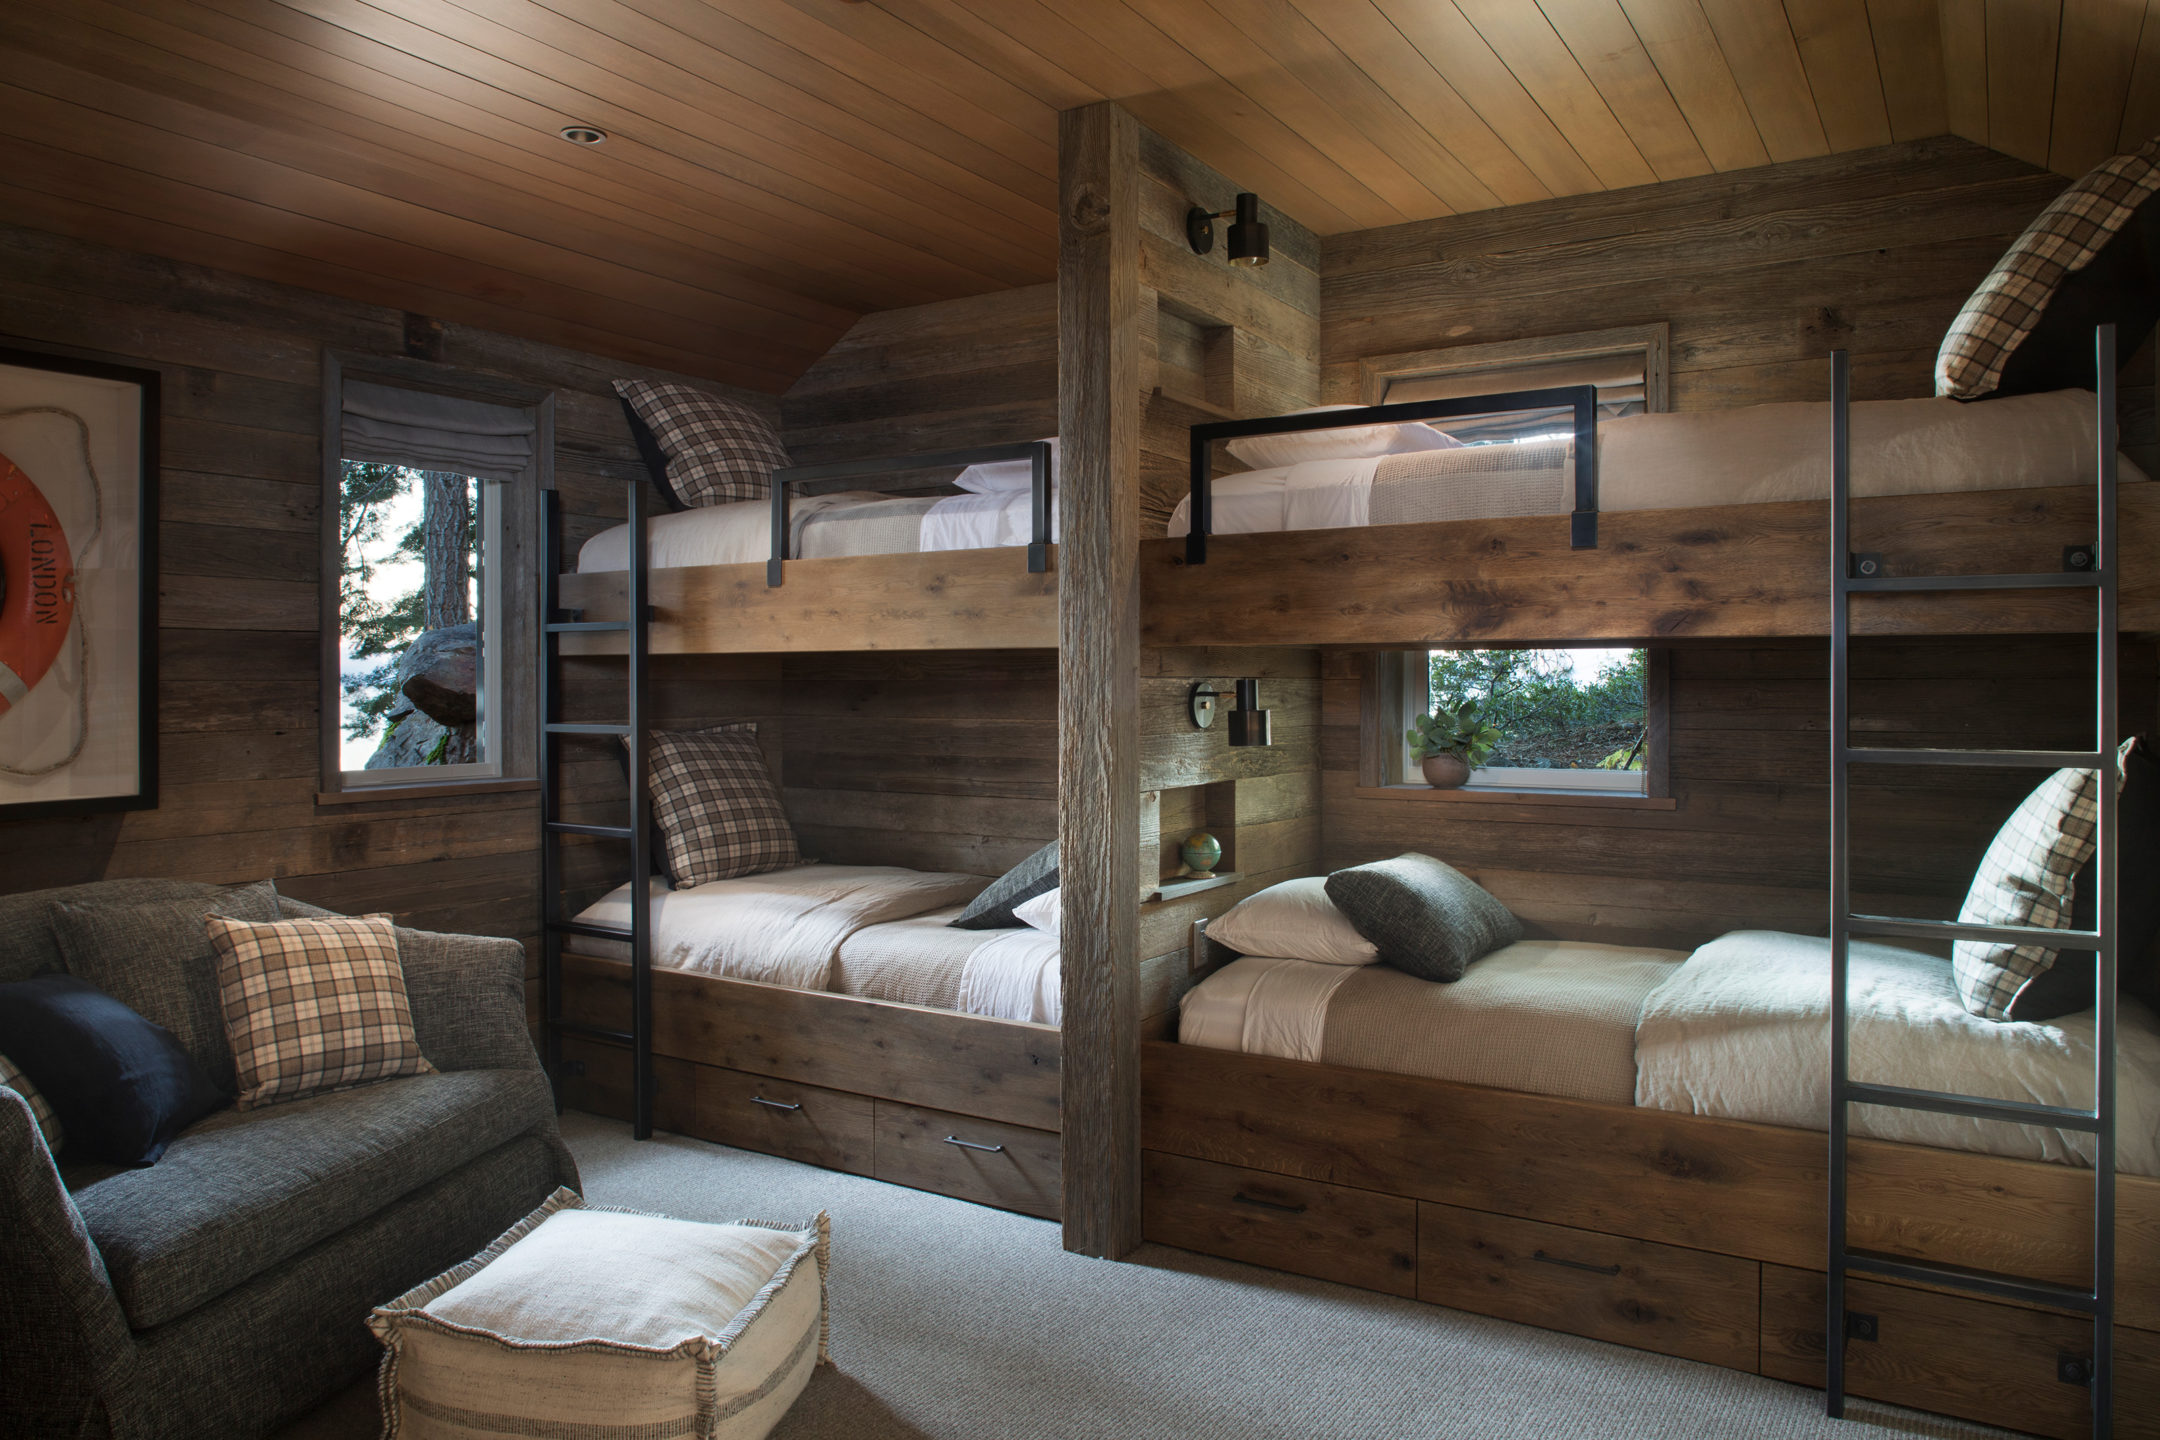 Jennifer_robins_interiors_projects_lake_tahoe_Leupold_27_off_bedroom_BR_bunk_beds